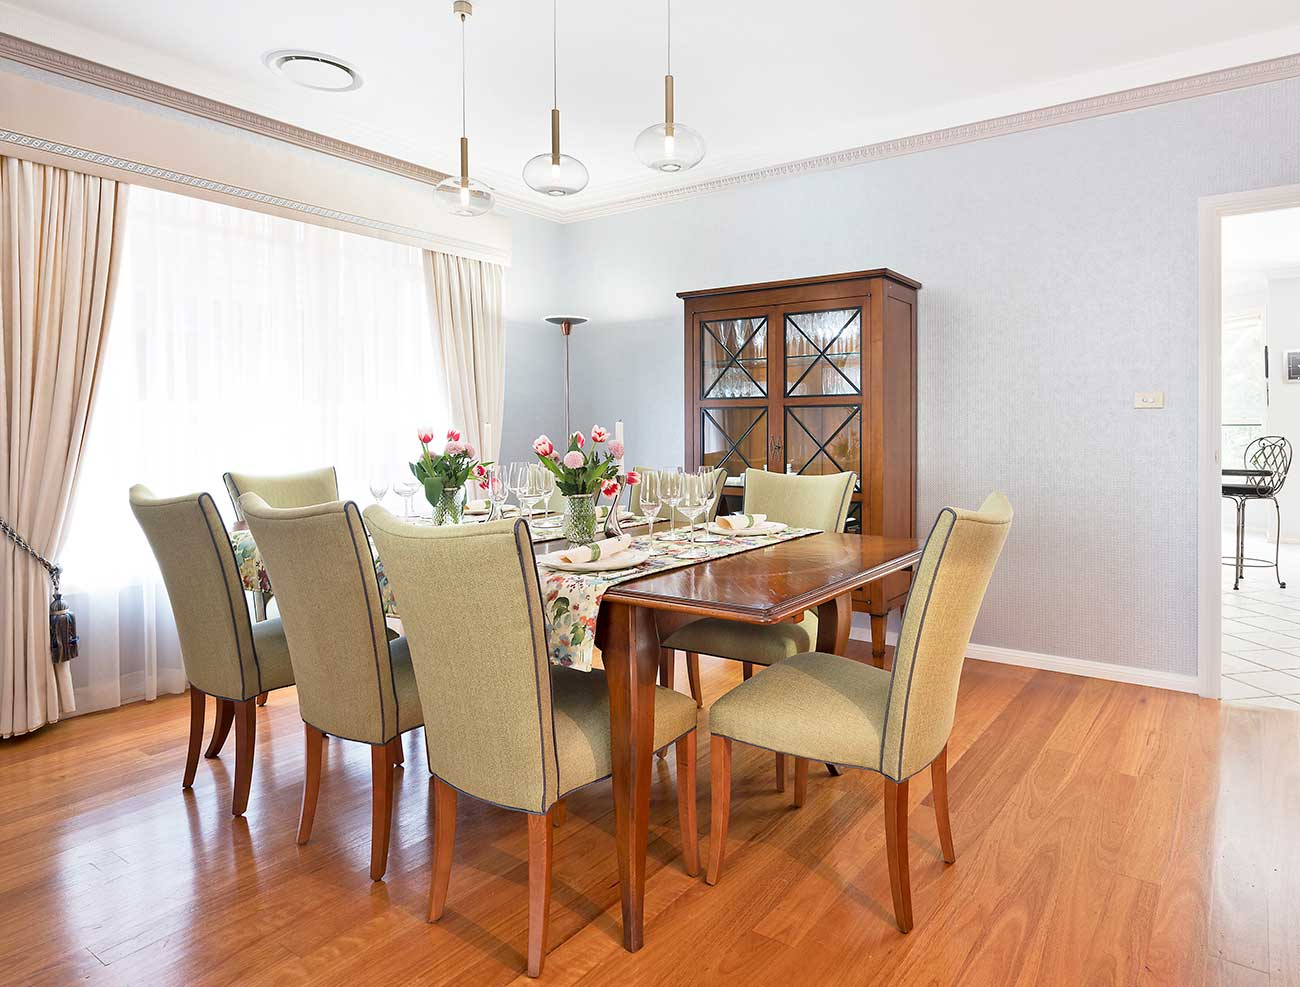 Dining room set for a feast